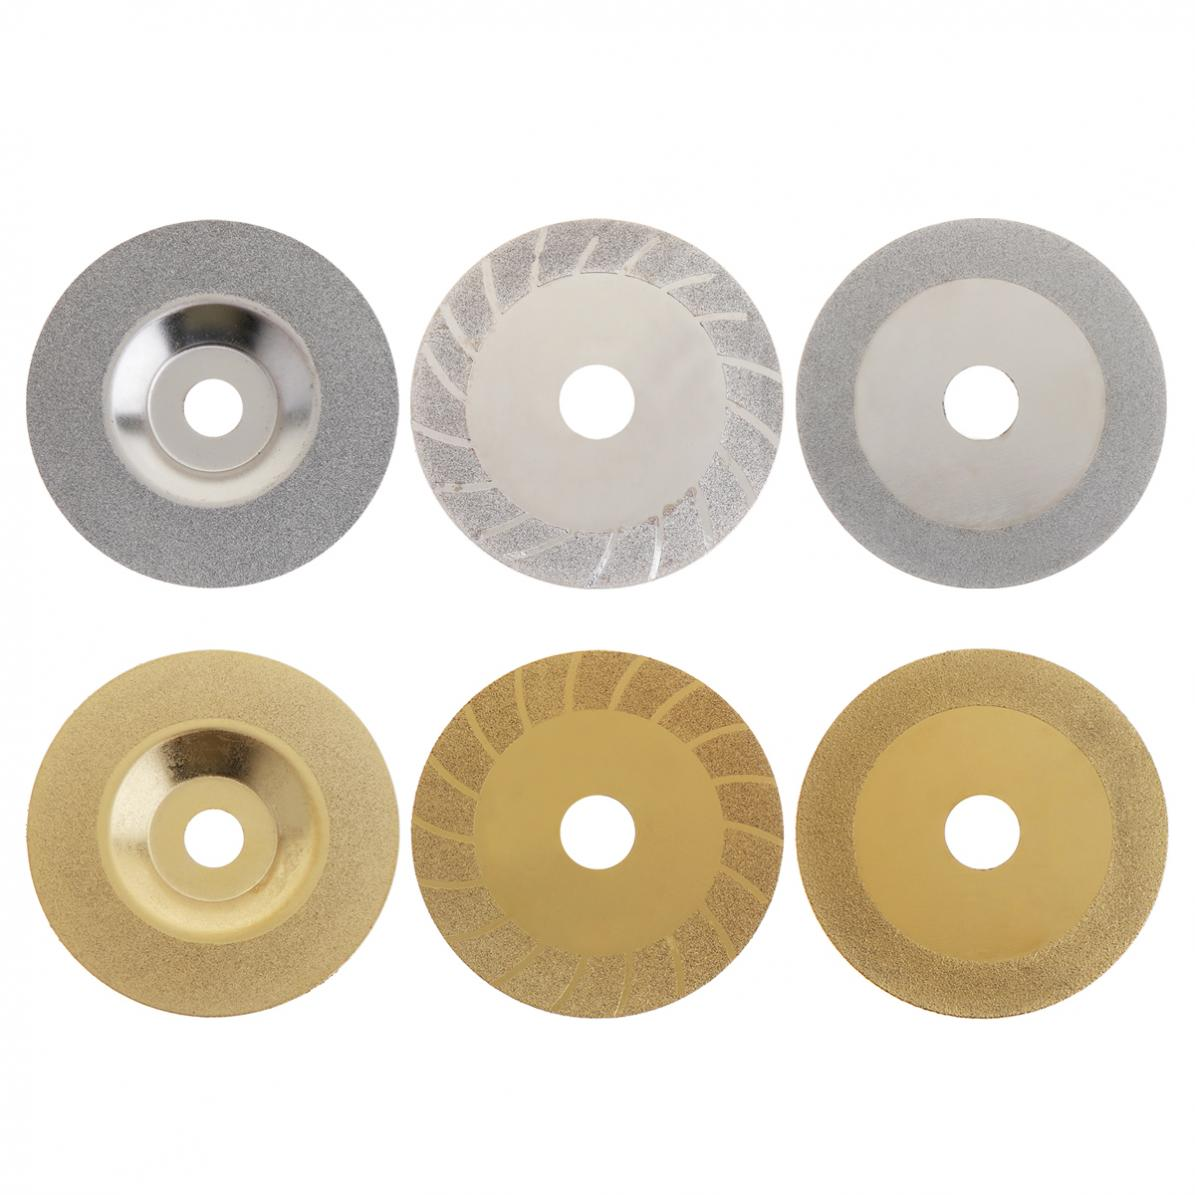 6Pc Top Quality 100mm Sliver/Gold Diamond Coated Wheel Disc Glass Stone Grinding Cutting Tools for Angle Grinder 4 inch 6 inch straight cup diamond grinding wheel for glass edger straight line double edging beveling machine m009